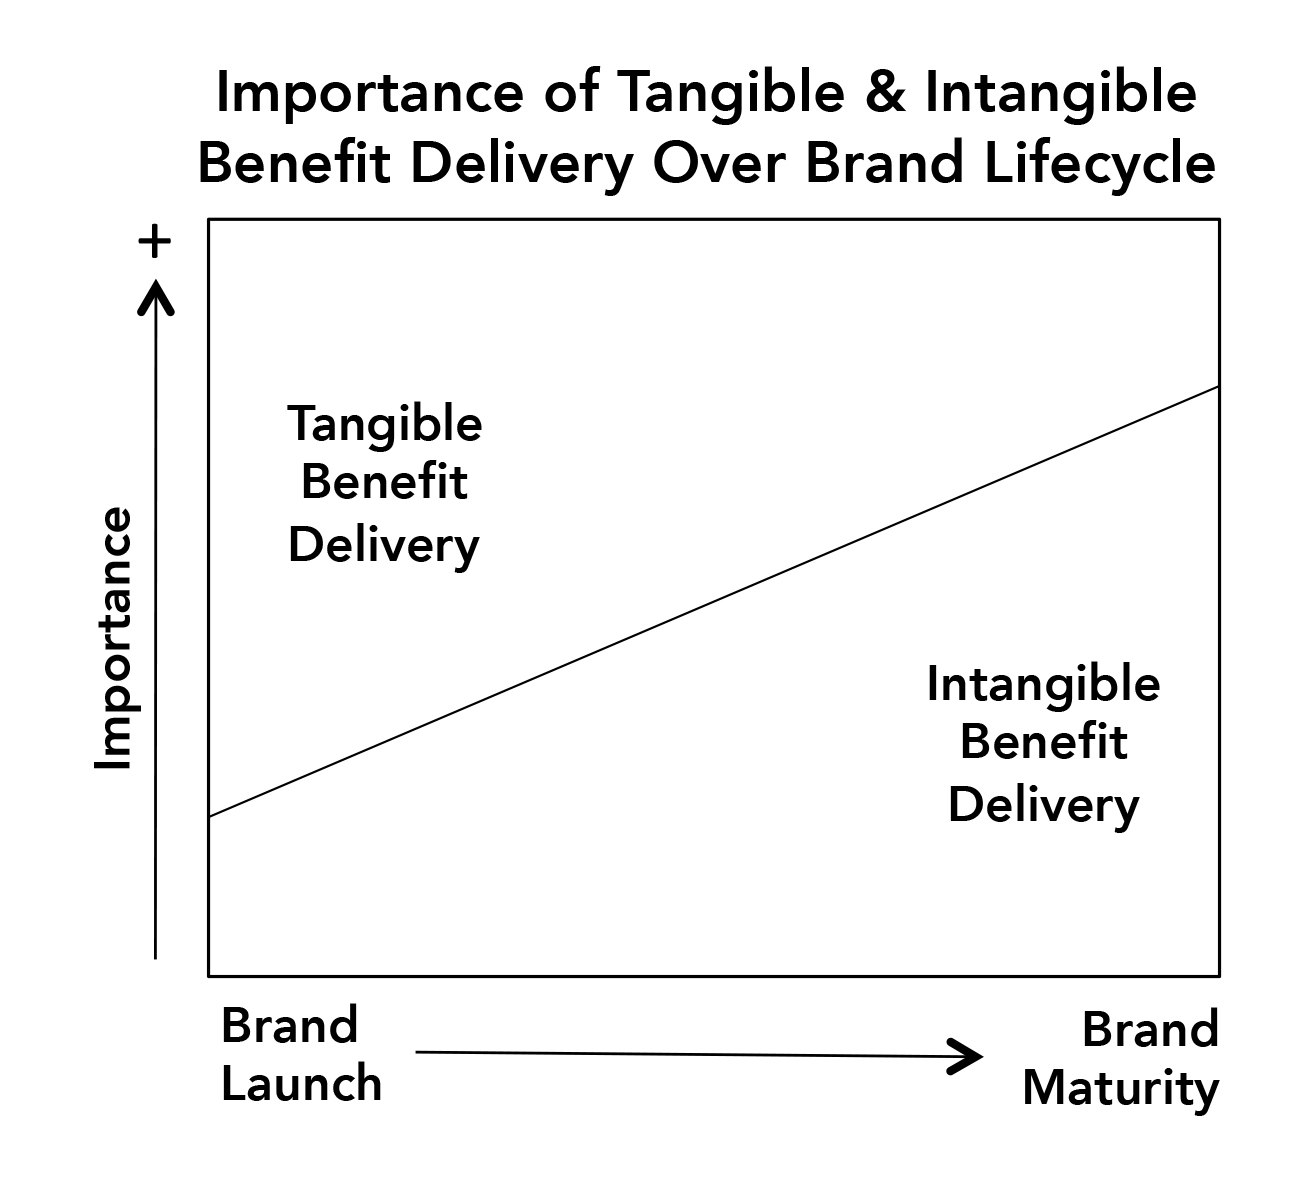 Importance-of-Tangible--Intangible-Benefits